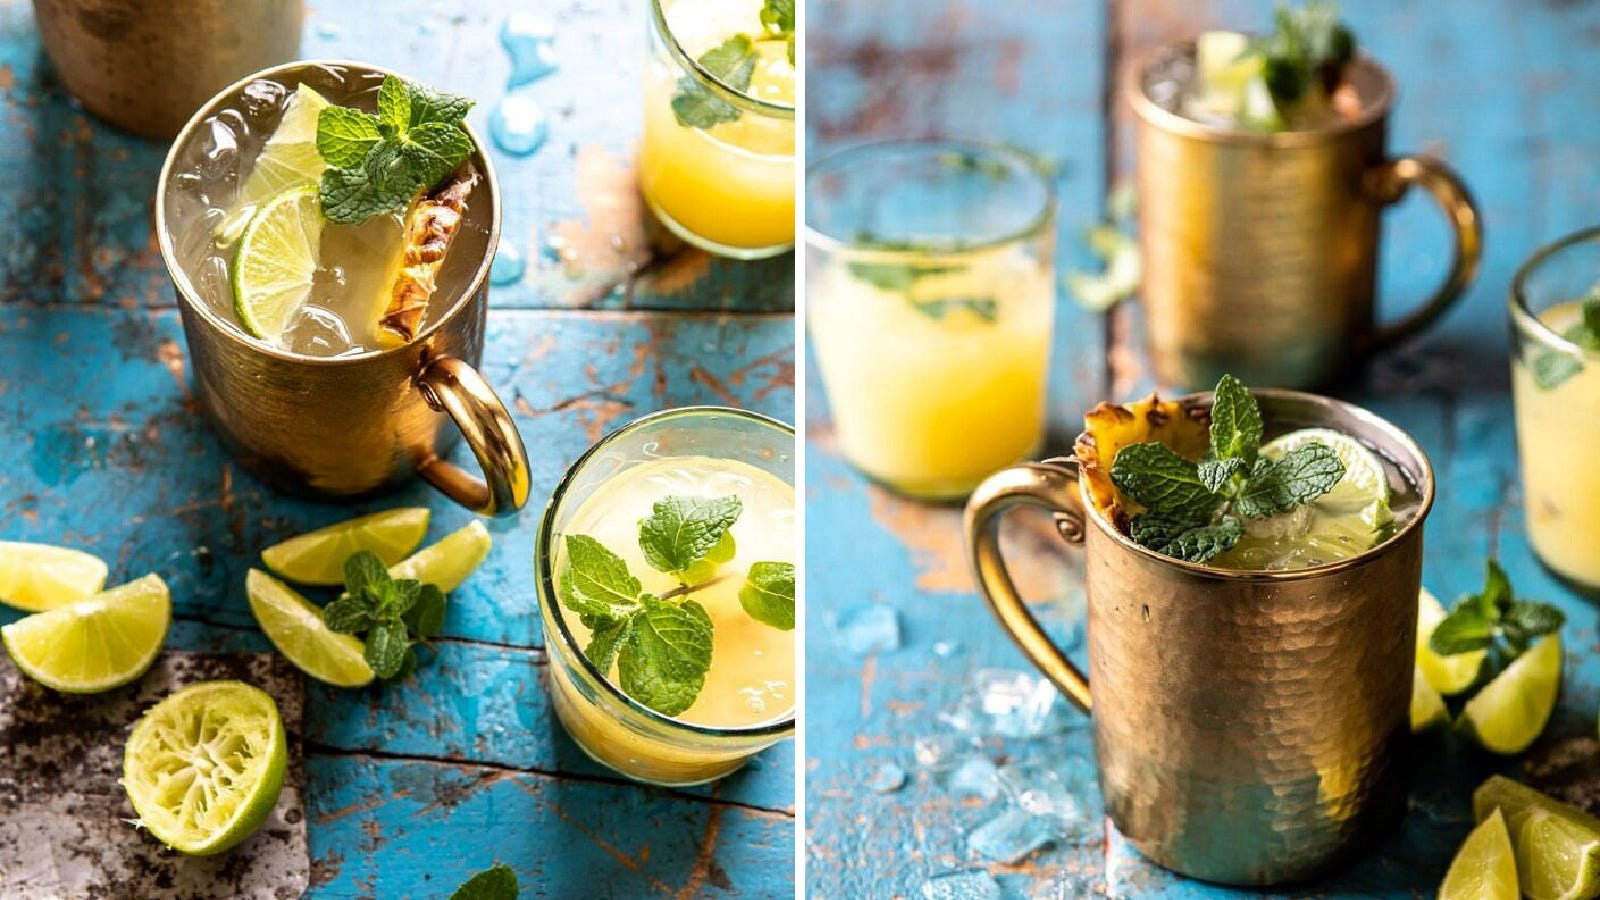 Two images displaying pineapple orange moscow mules served with pineapple and lime wedges, and mint leaf garnishes.